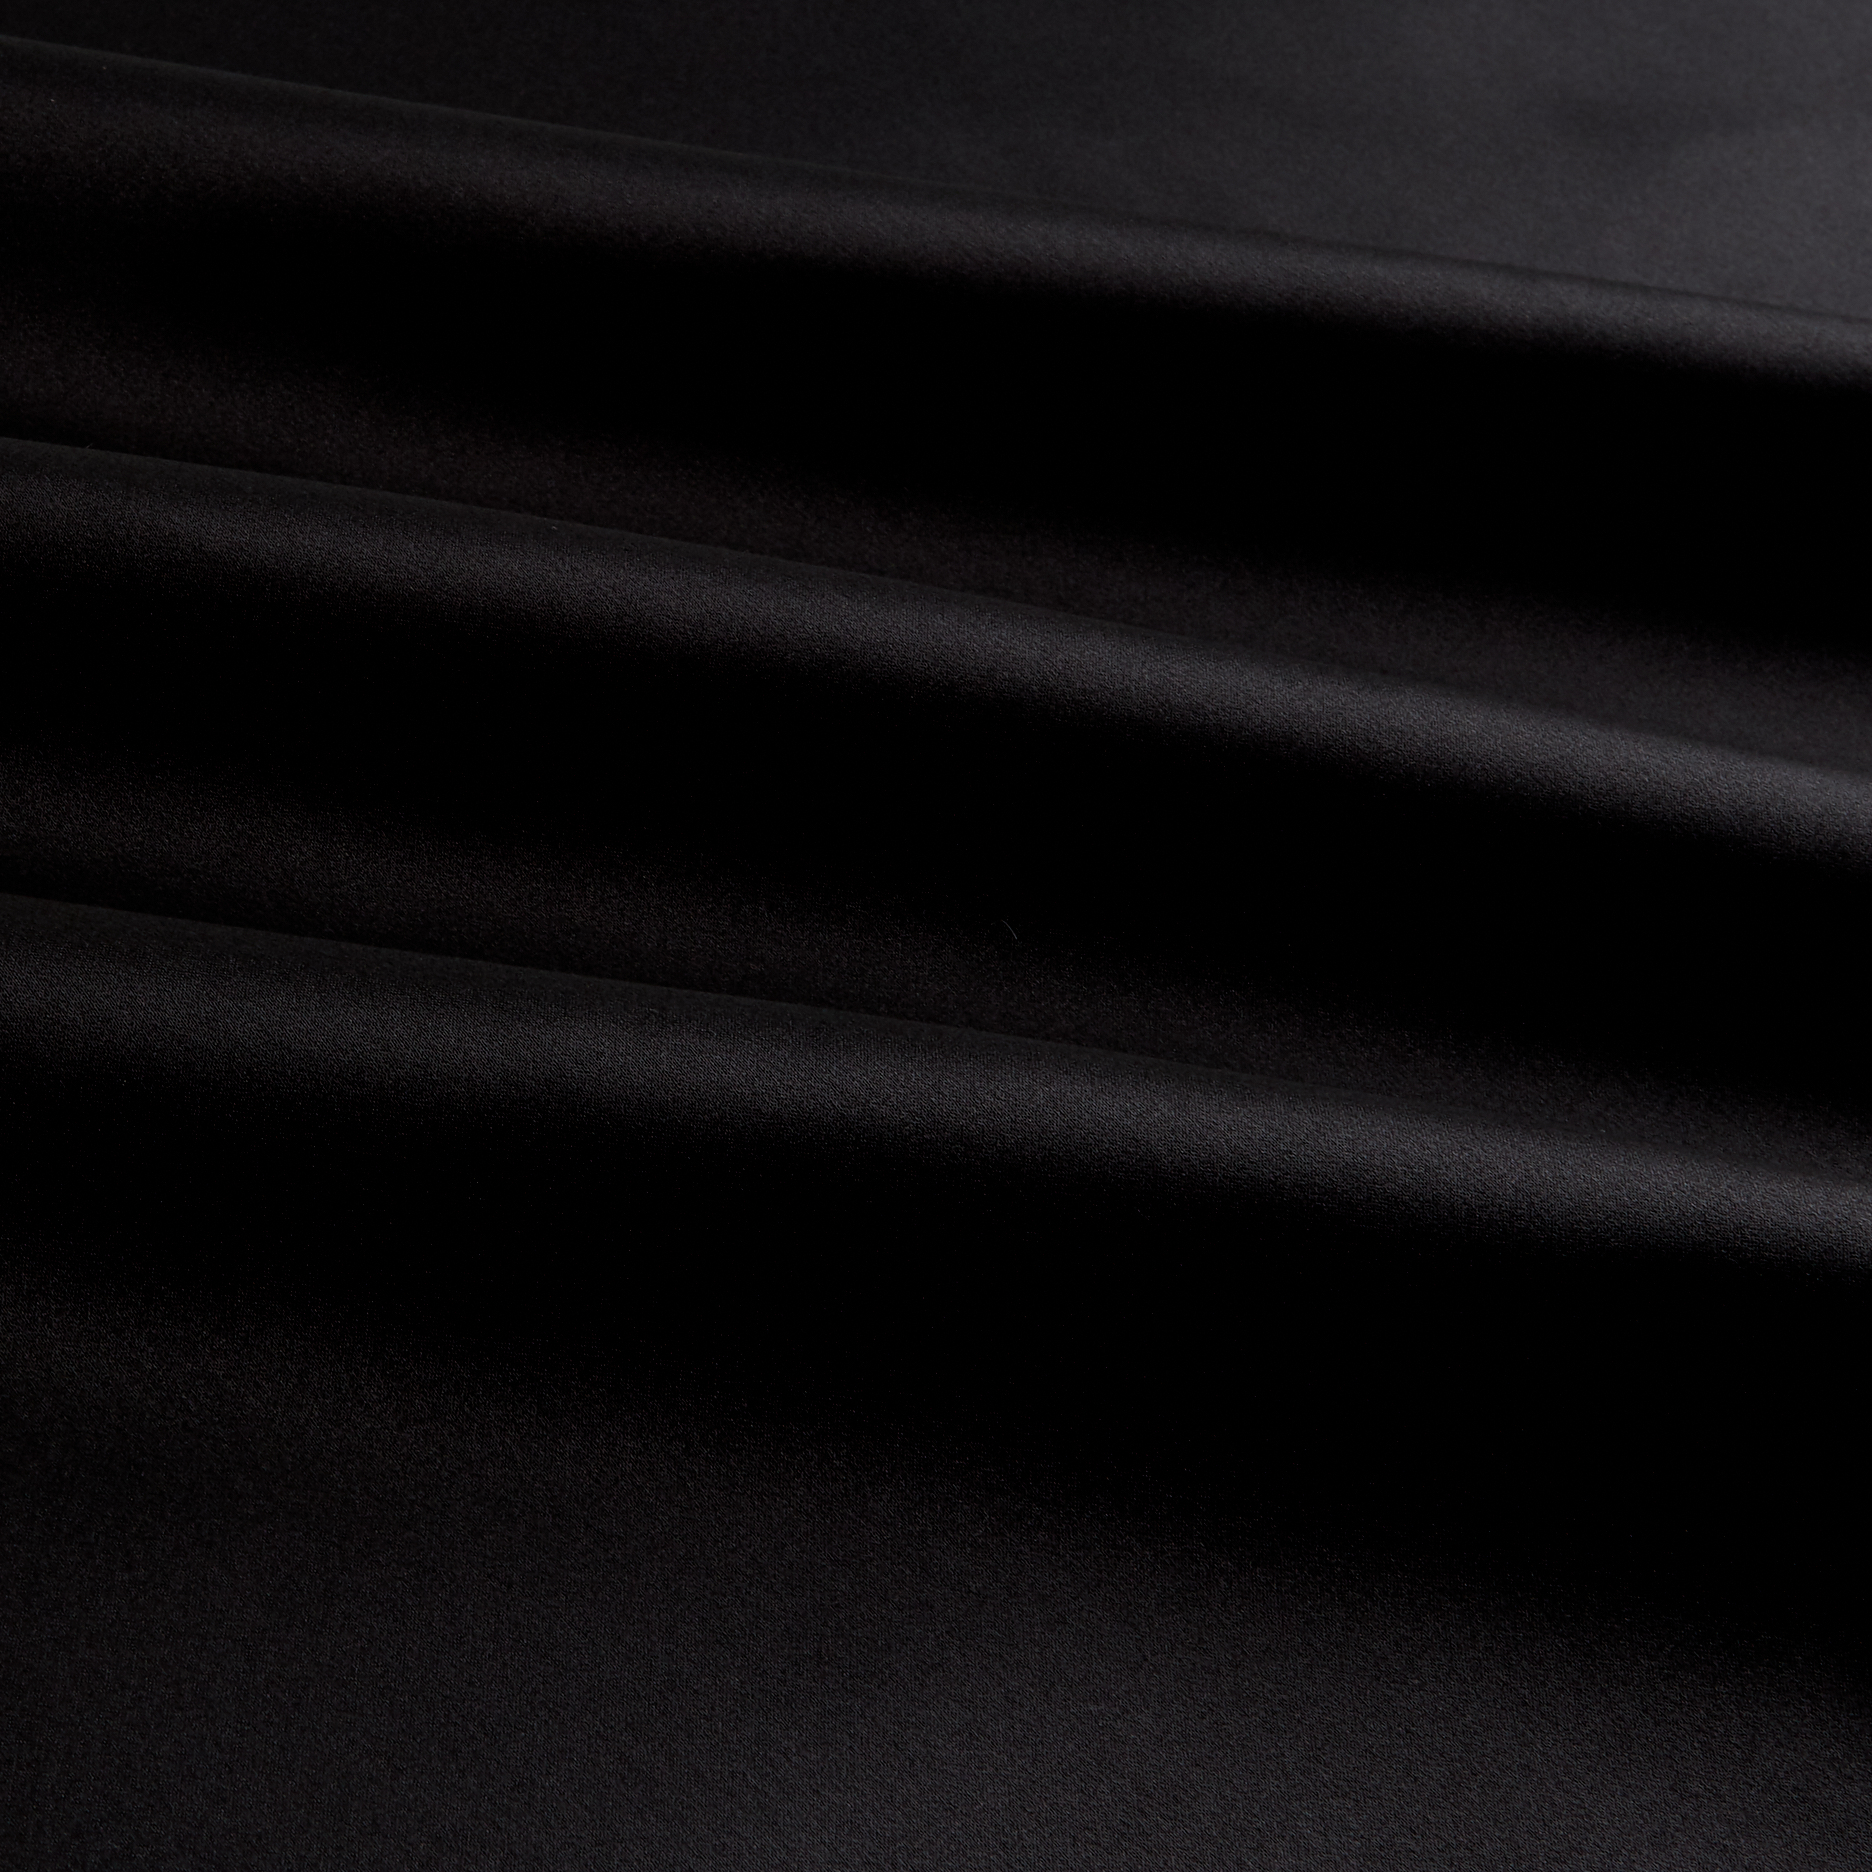 Image of 100% Silk Charmeuse Black Fabric